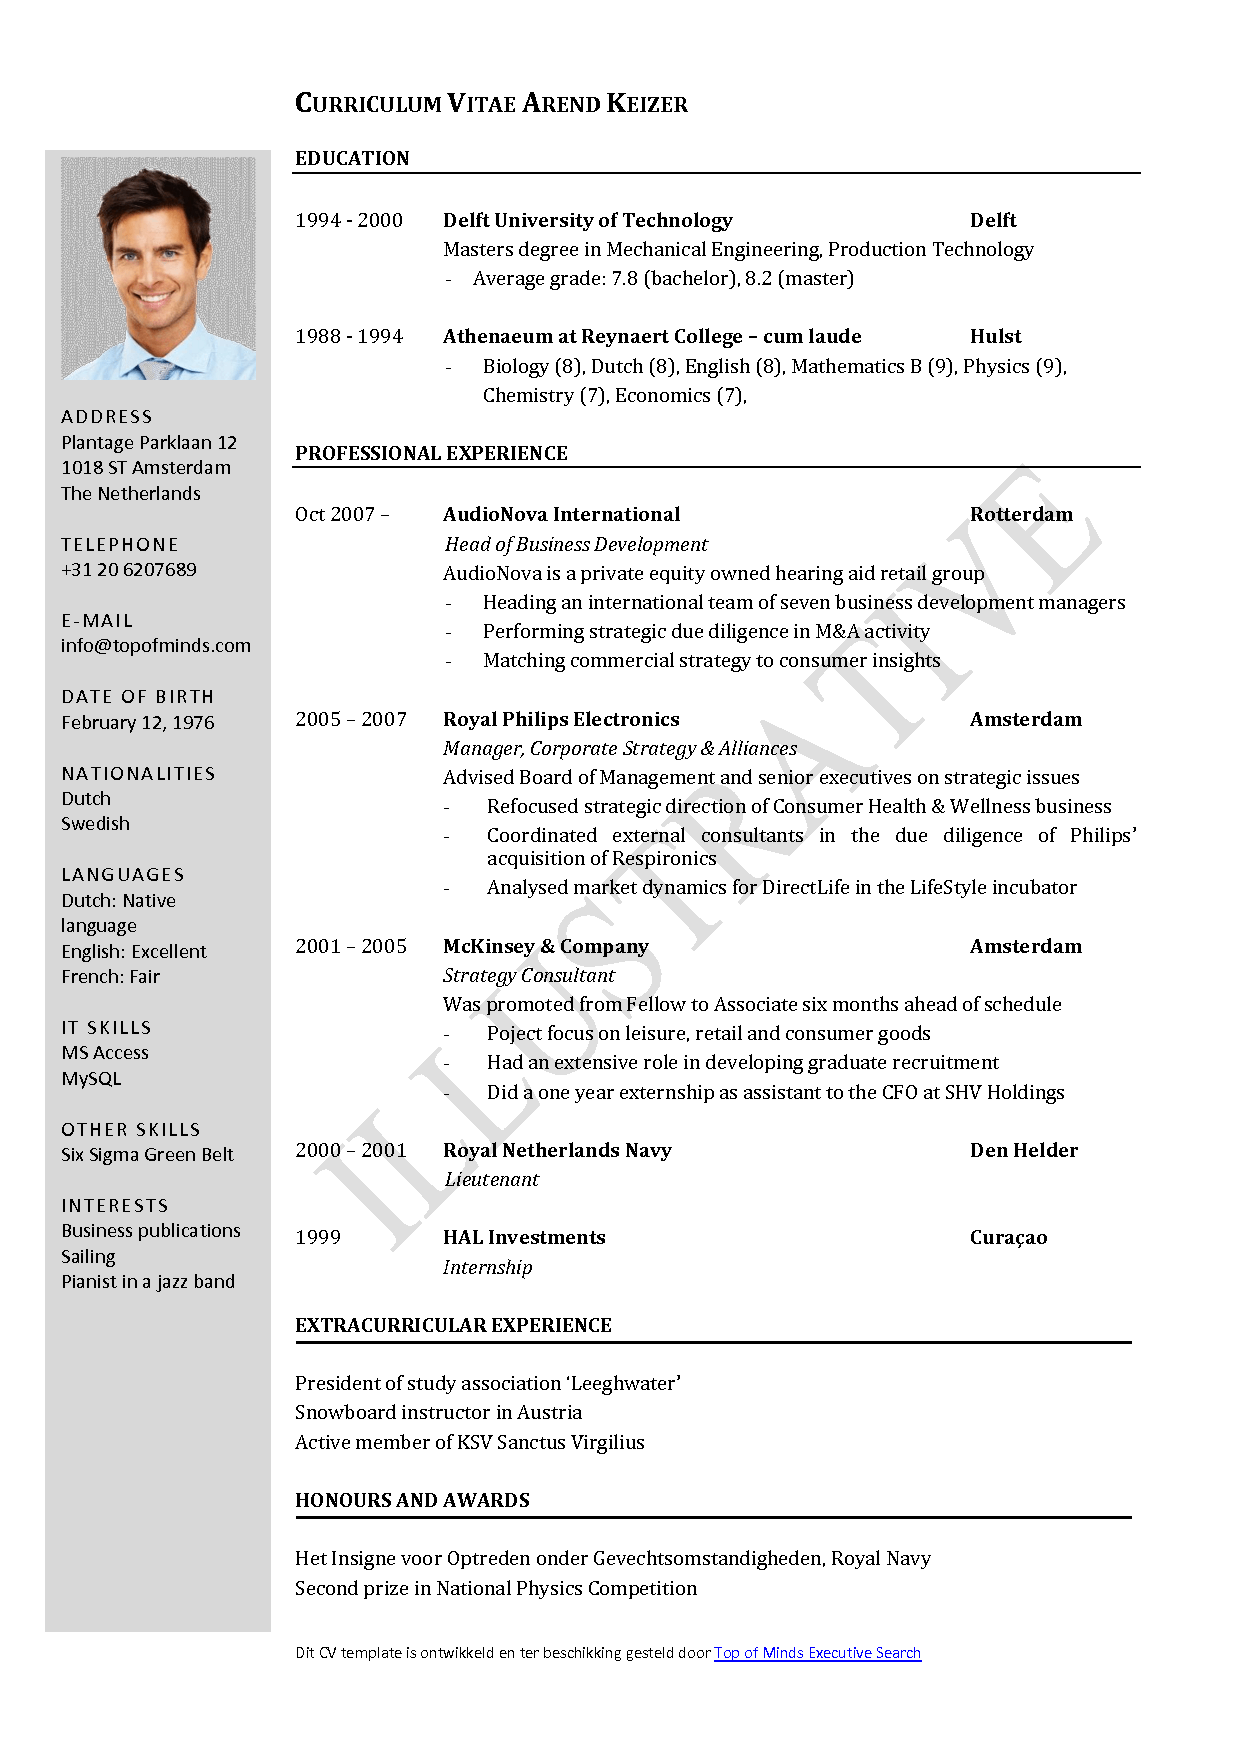 European Cv Template Word Download - Ecza.Solinf.Co